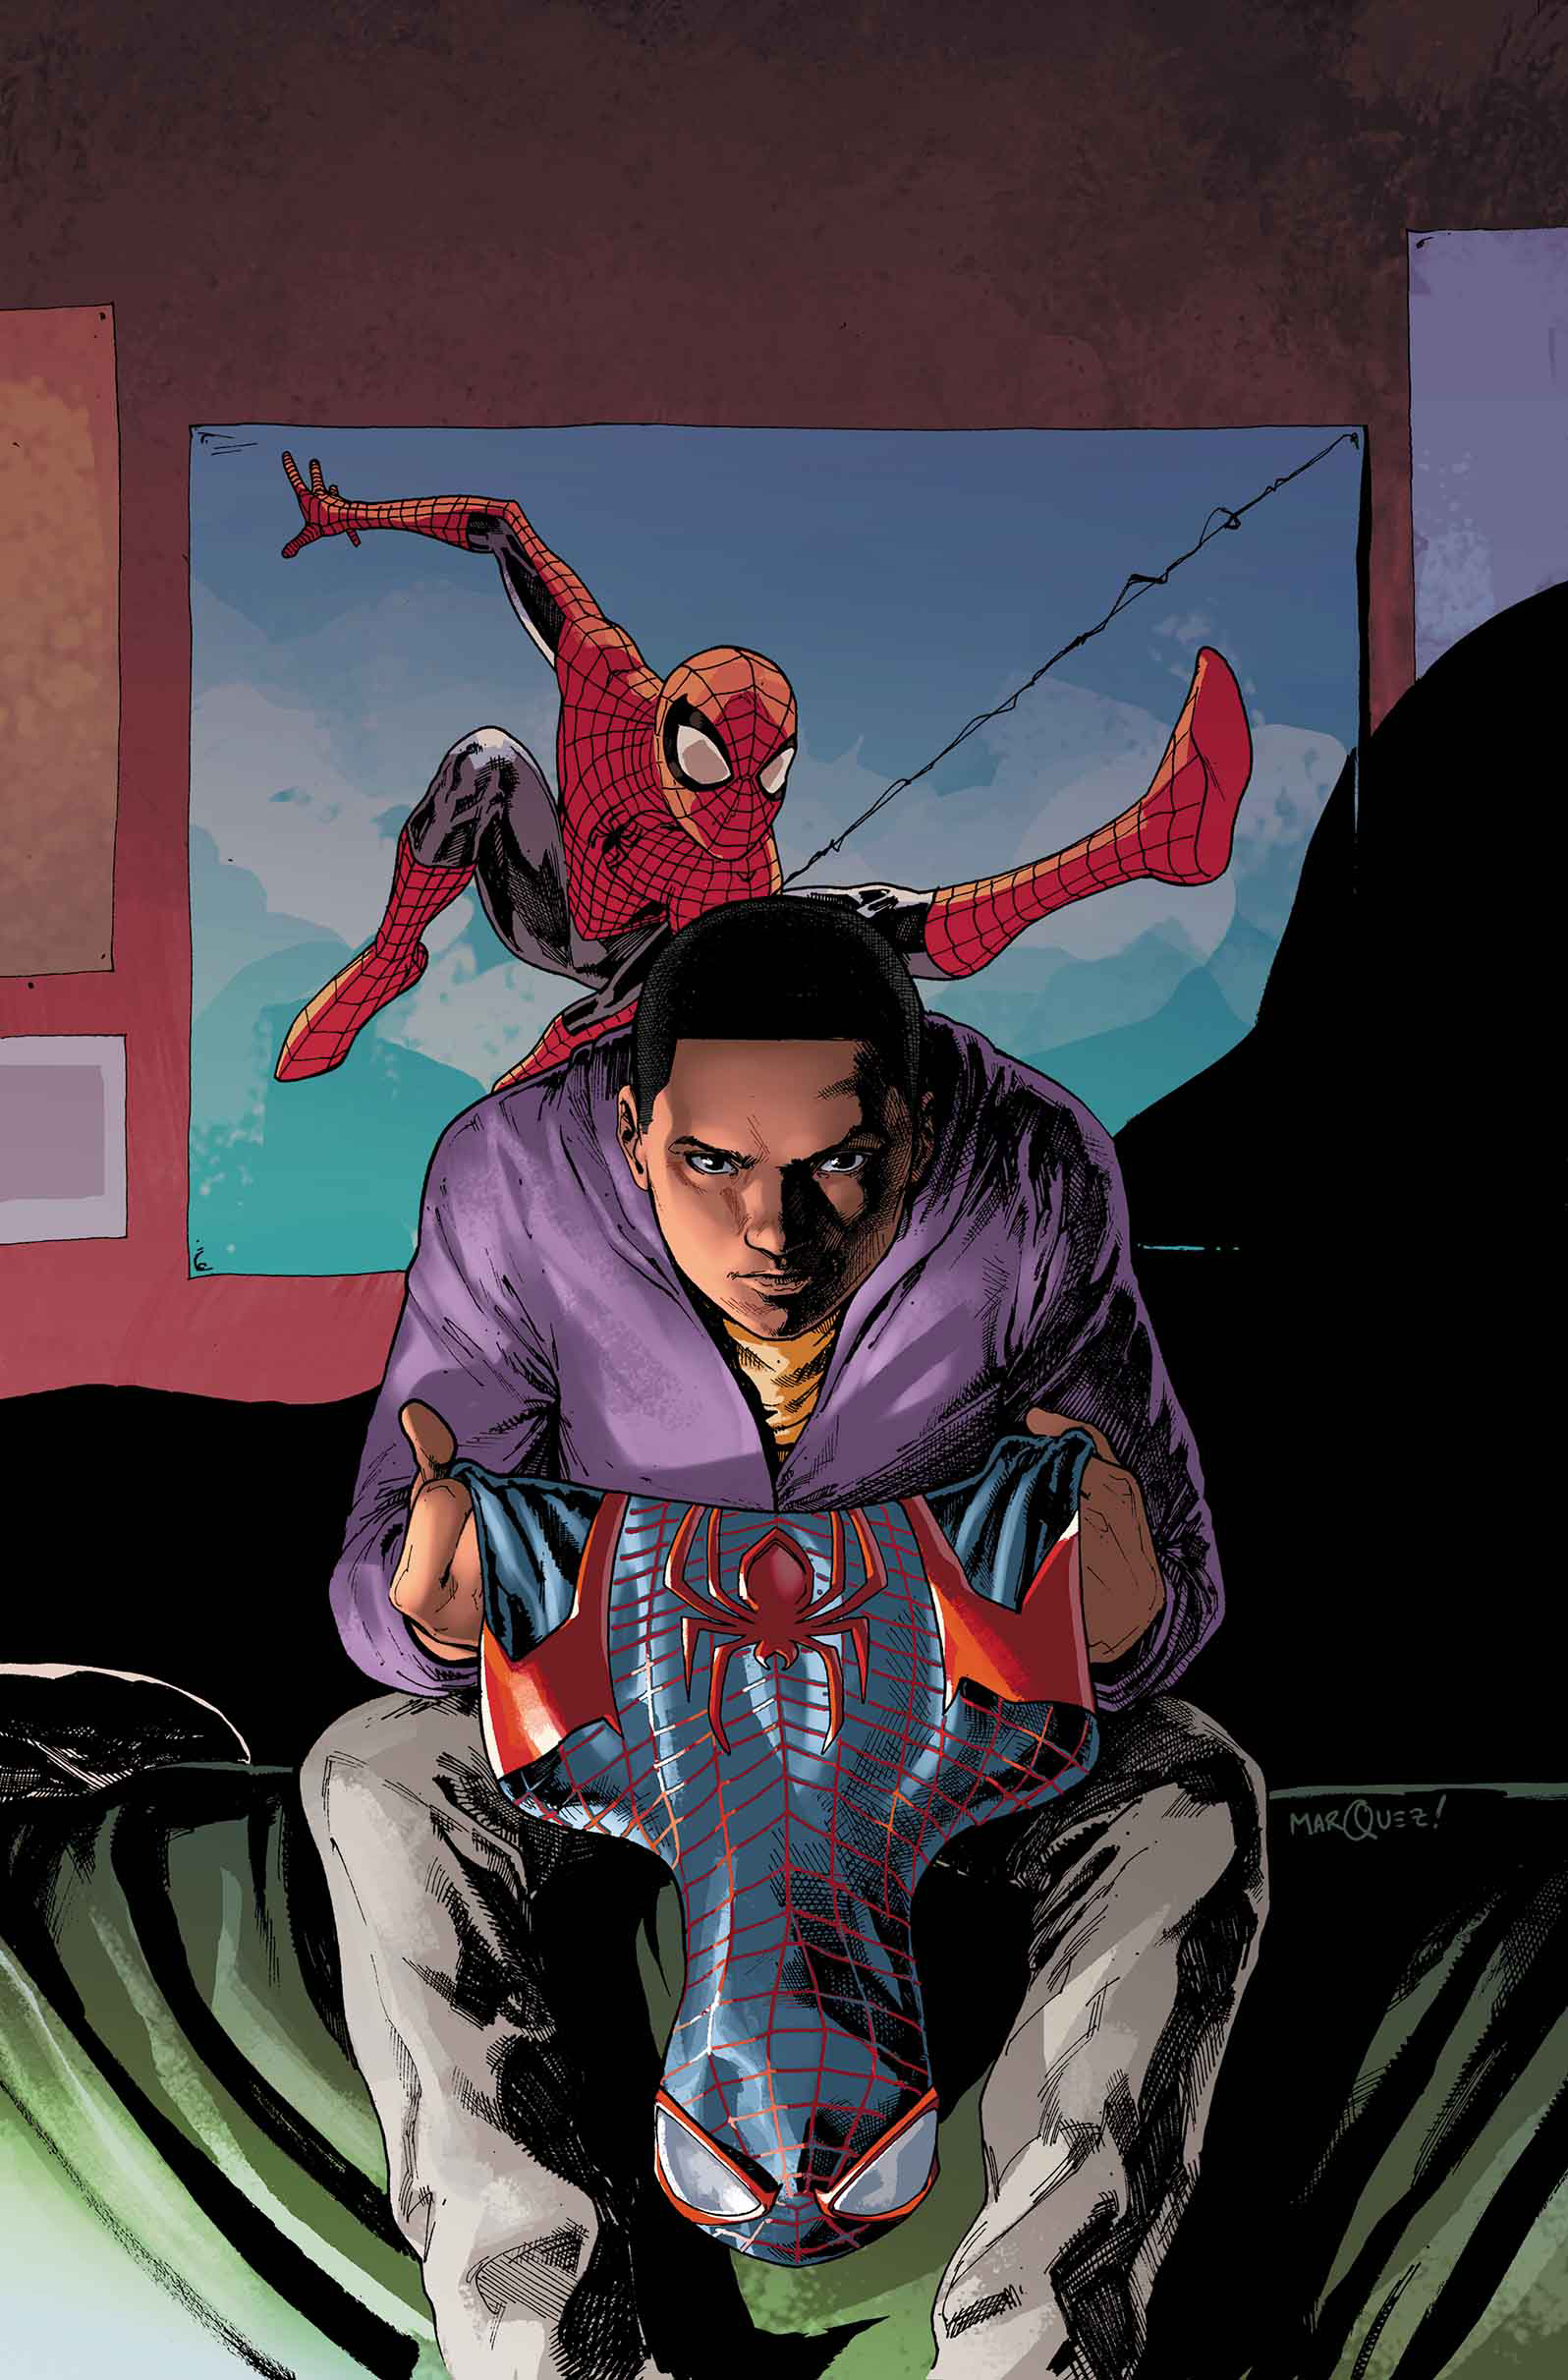 MILES MORALES ULTIMATE SPIDER-MAN #2